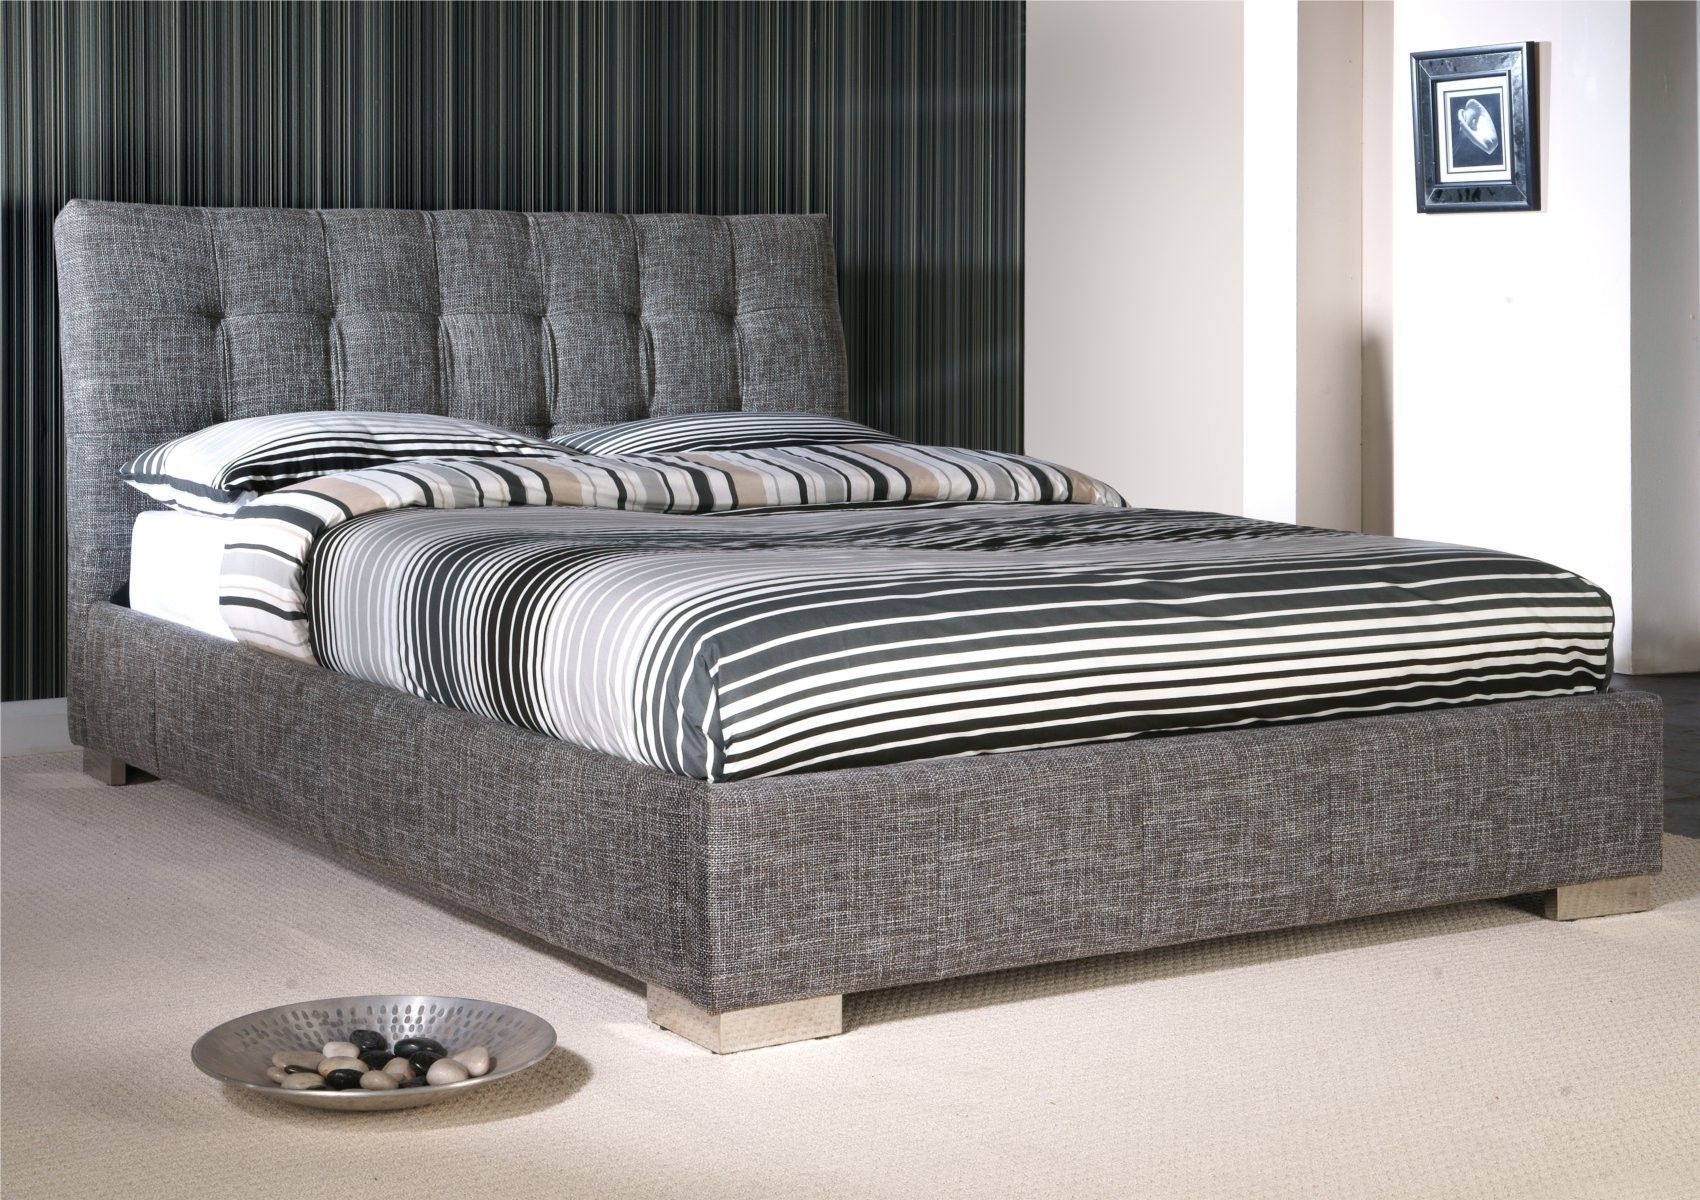 a modern bedstead in laste waffle fabric featuring a curved headboard and chrome feet sprung slatted to give extra comfort bed available in and